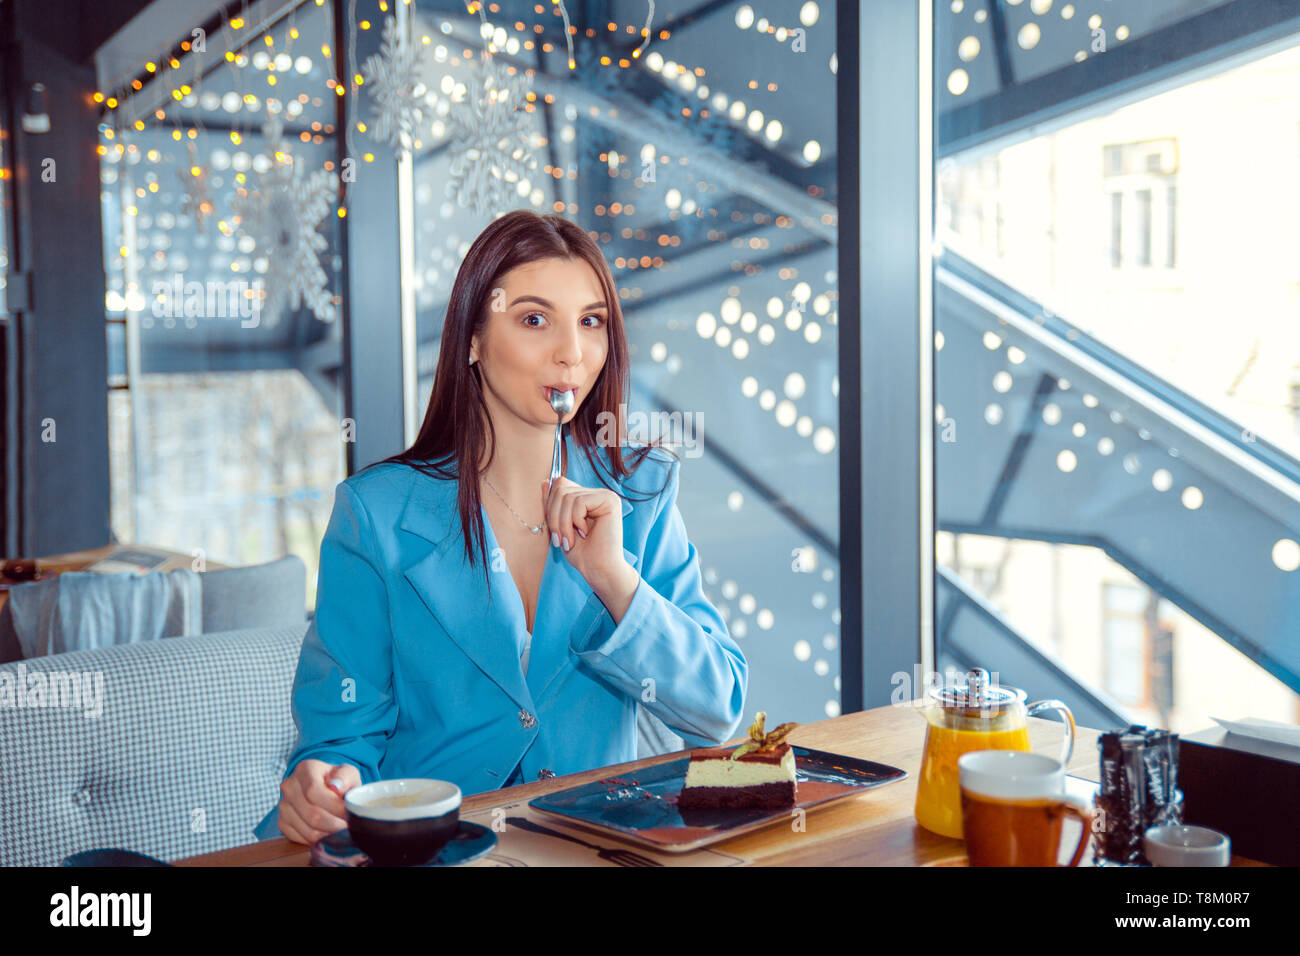 Woman licking spoon eating something delicious in a cozy restaurant and tastes local cuisine. Hispanic girl wearing formal blue suit sitting at a tabl - Stock Image